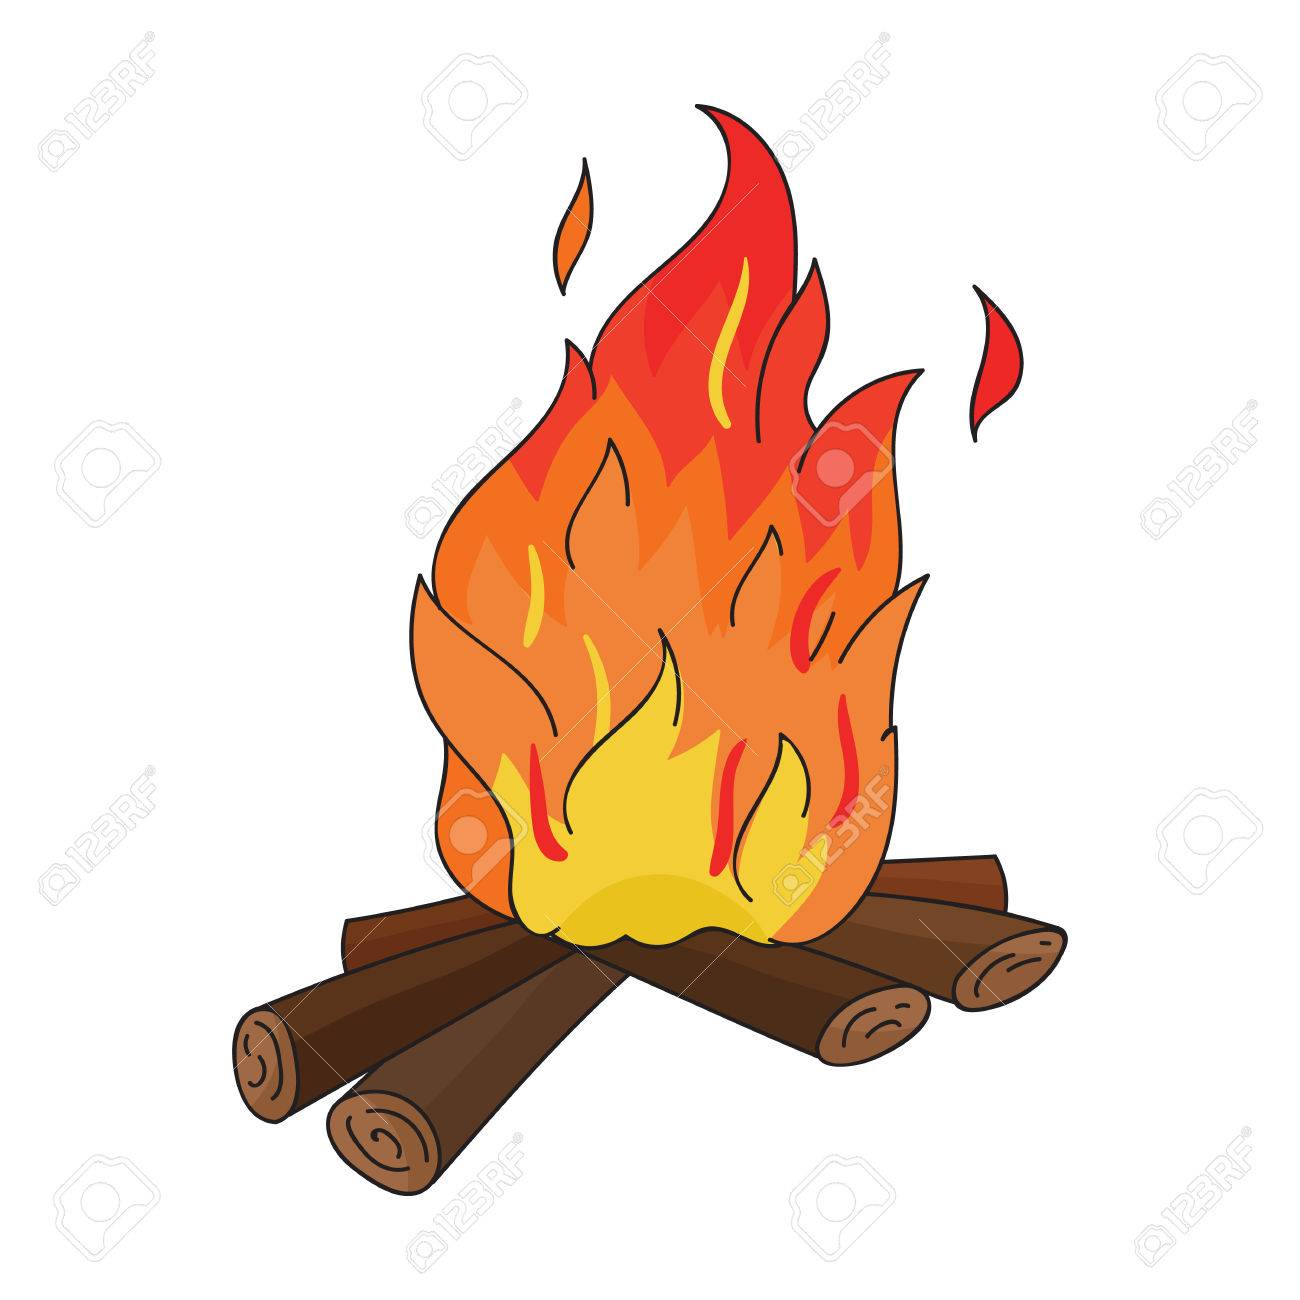 campfire of stone age icon in cartoon style isolated on white rh 123rf com campfire cartoon images campfire cartoon images